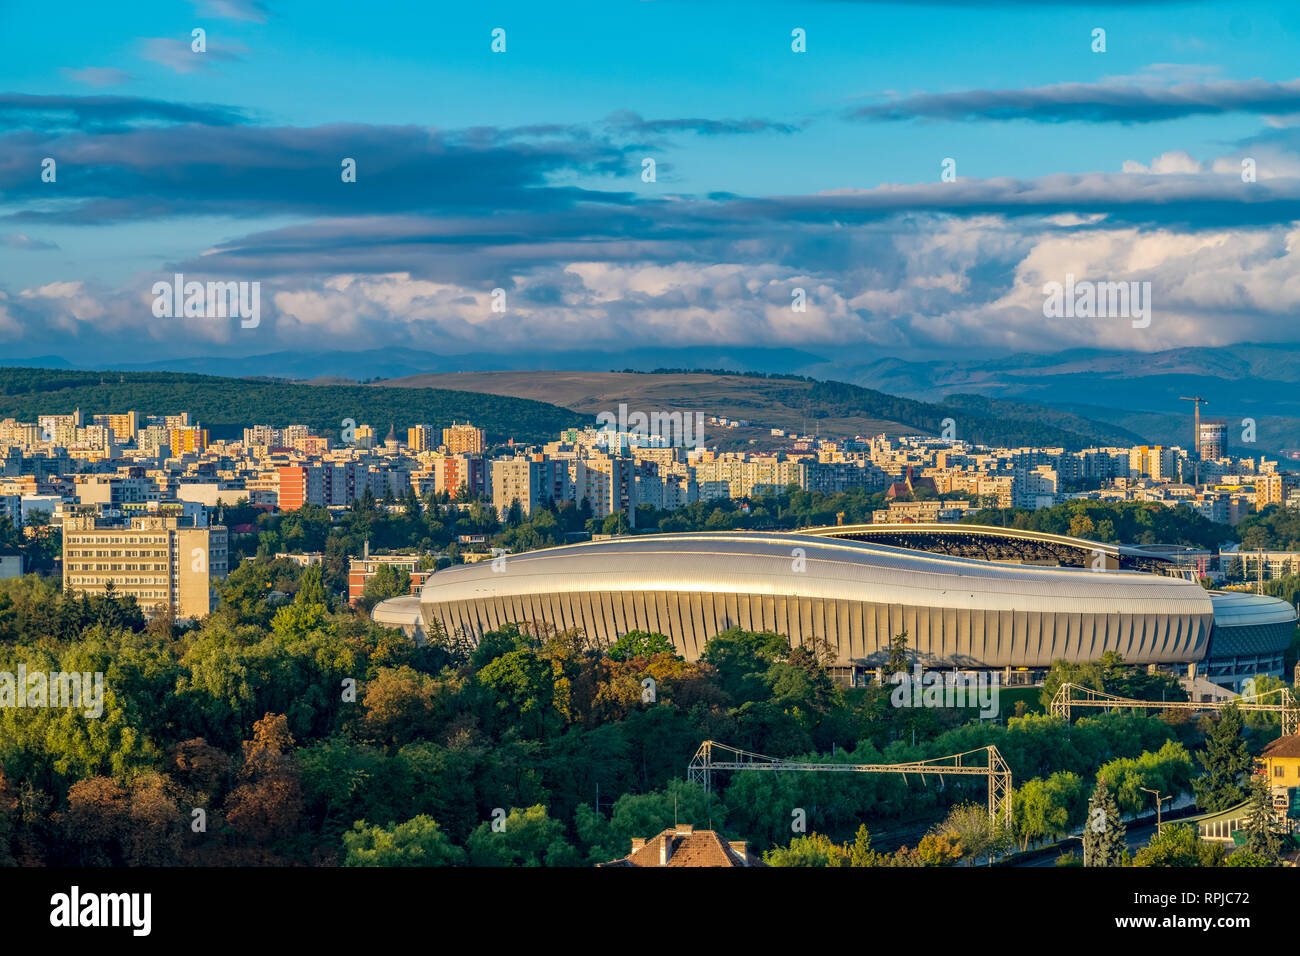 Cluj Arena multi-use stadium on a sunny day with blue sky in Cluj-Napoca, Romania. It is ranked as an UEFA Elite Stadium. - Stock Image